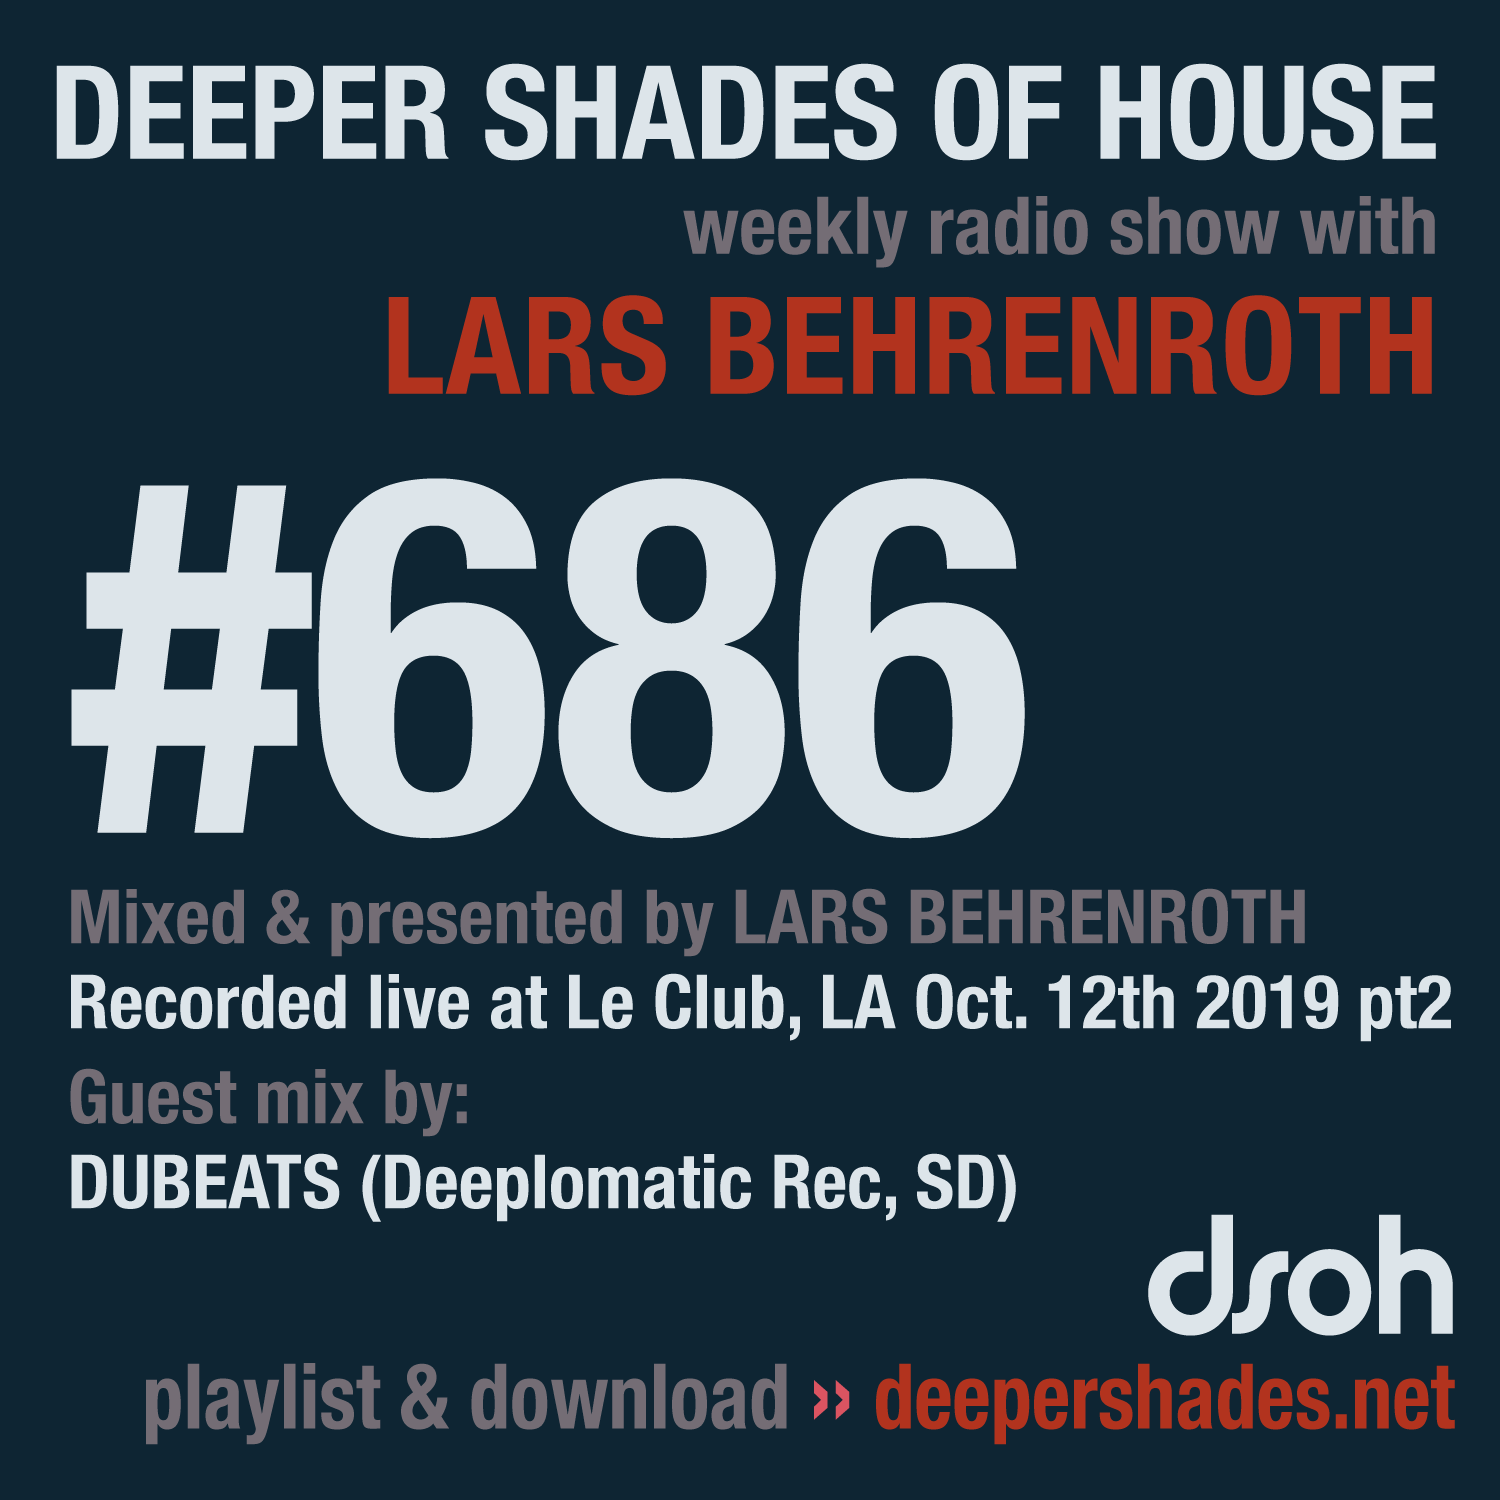 Deeper Shades Of House #686 - guest mix by DUBEATS